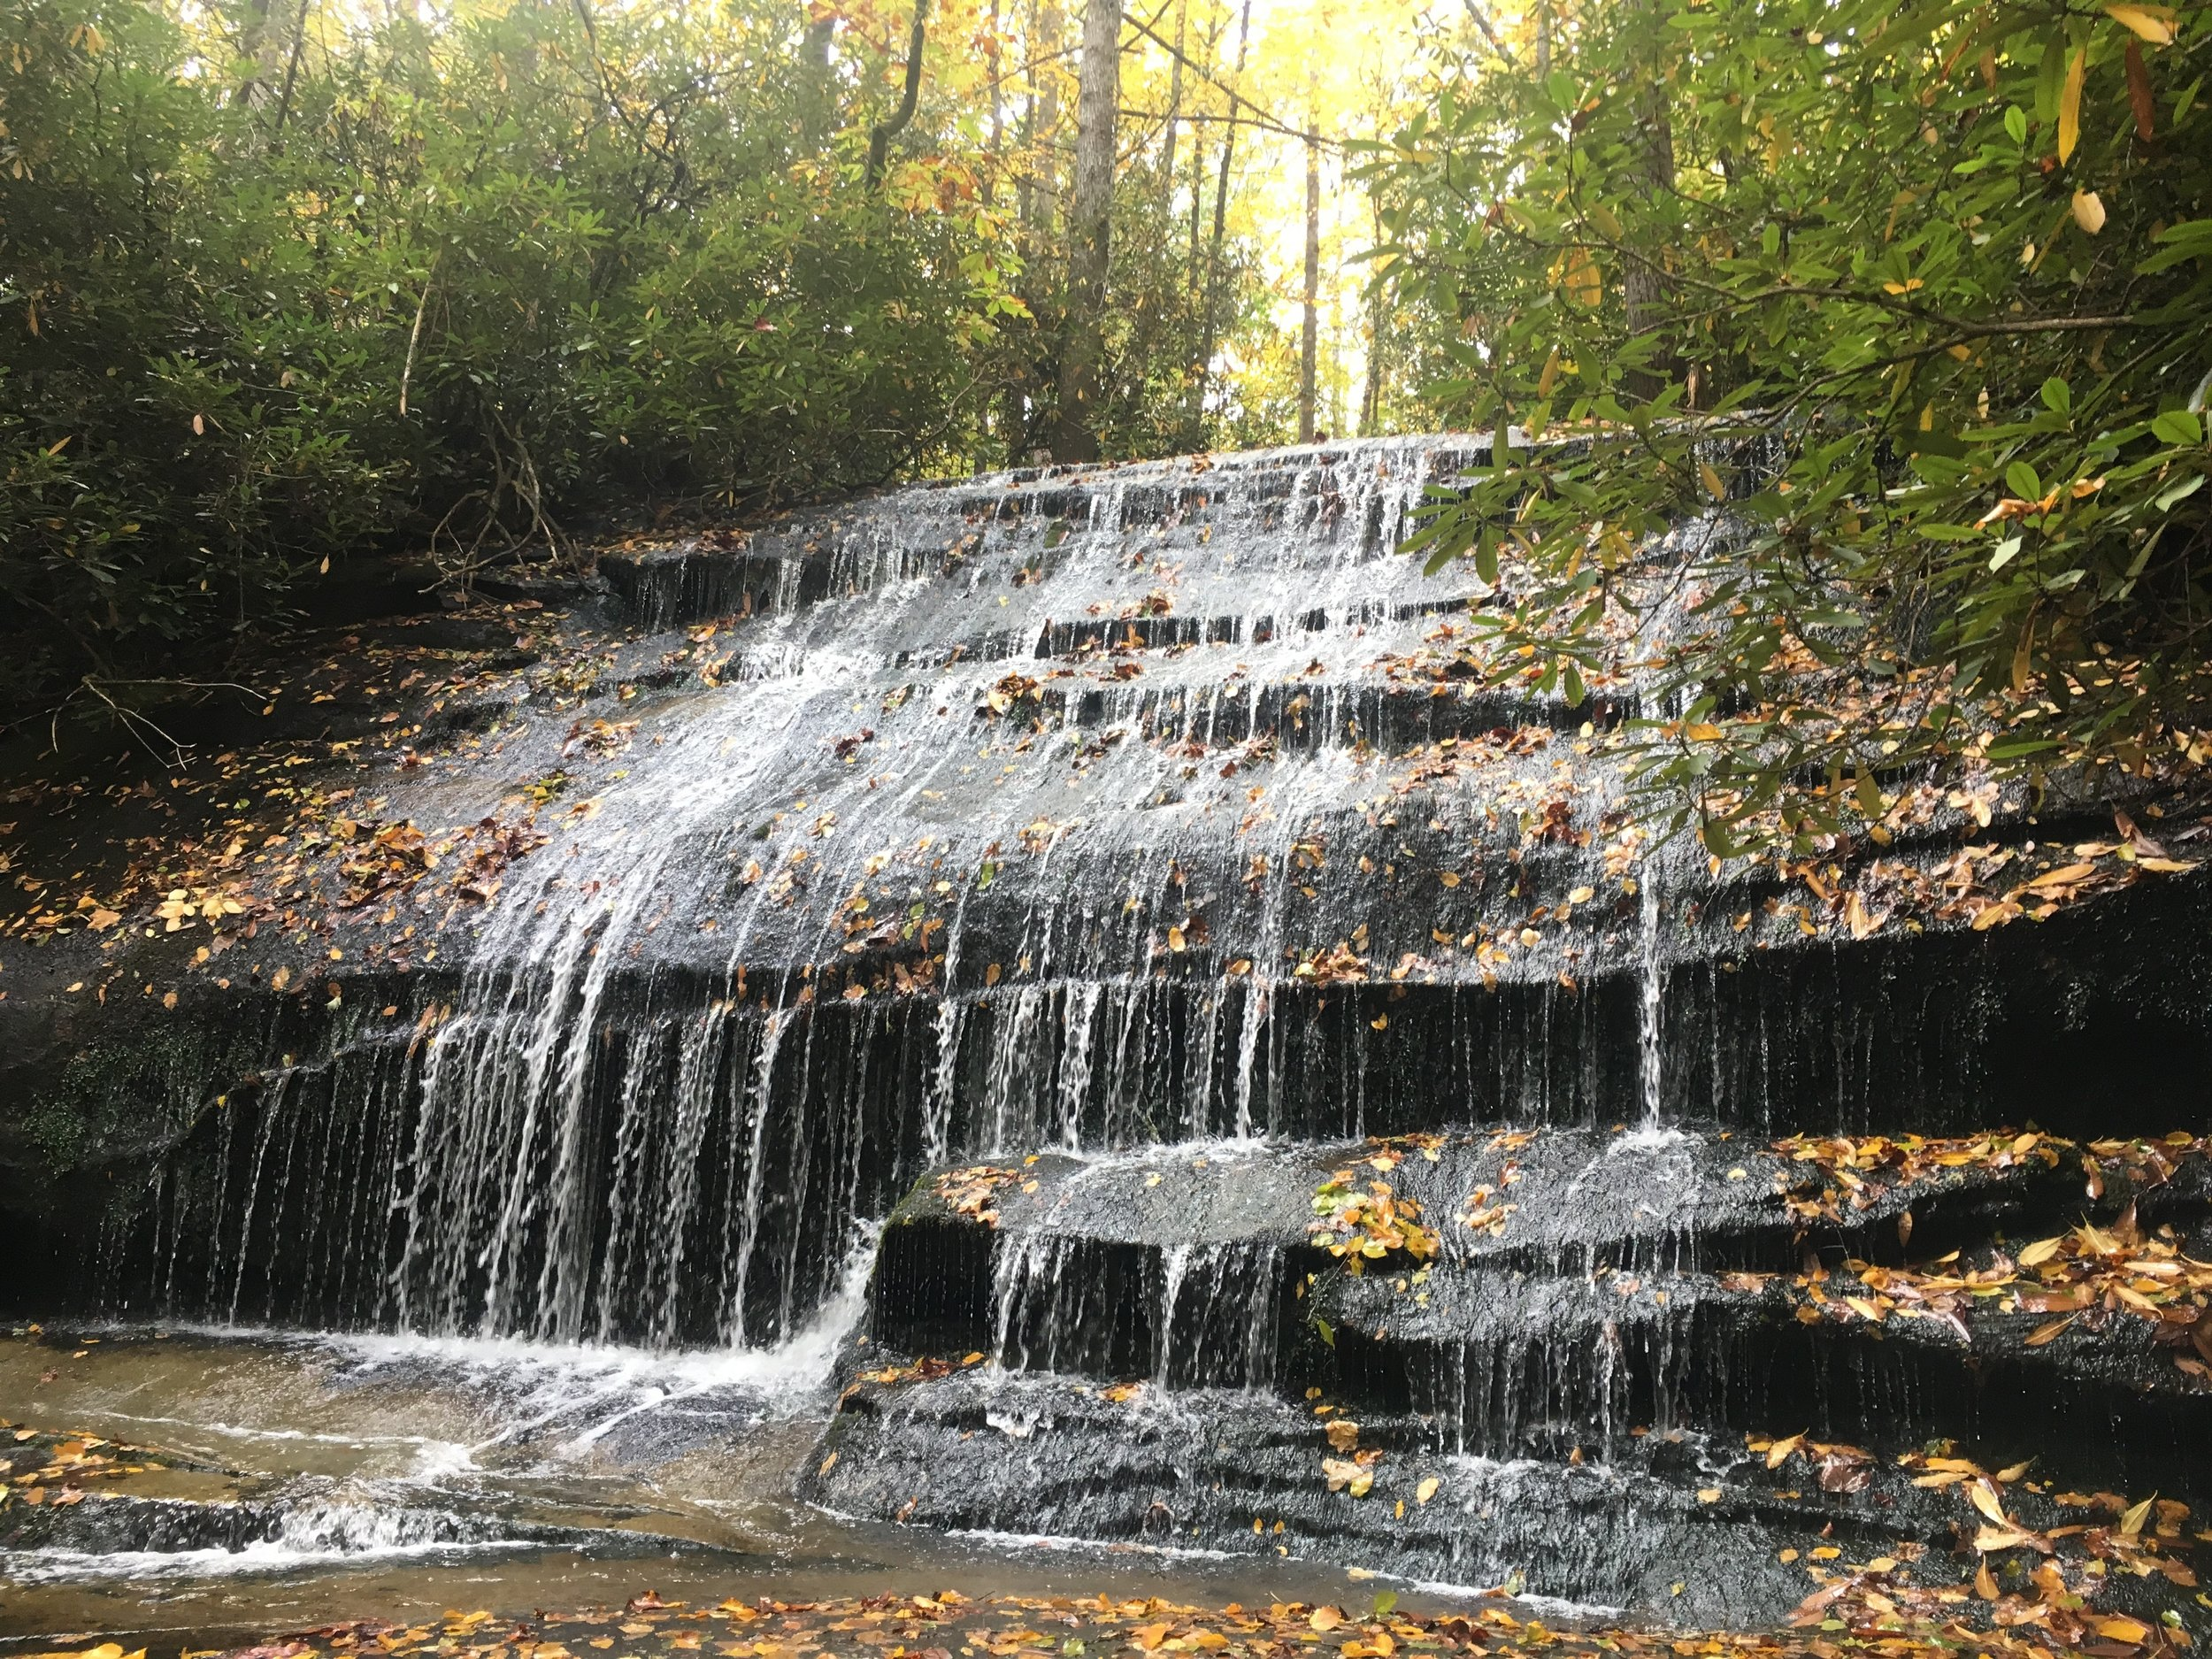 Just one of the many beautiful waterfalls in Pisgah!